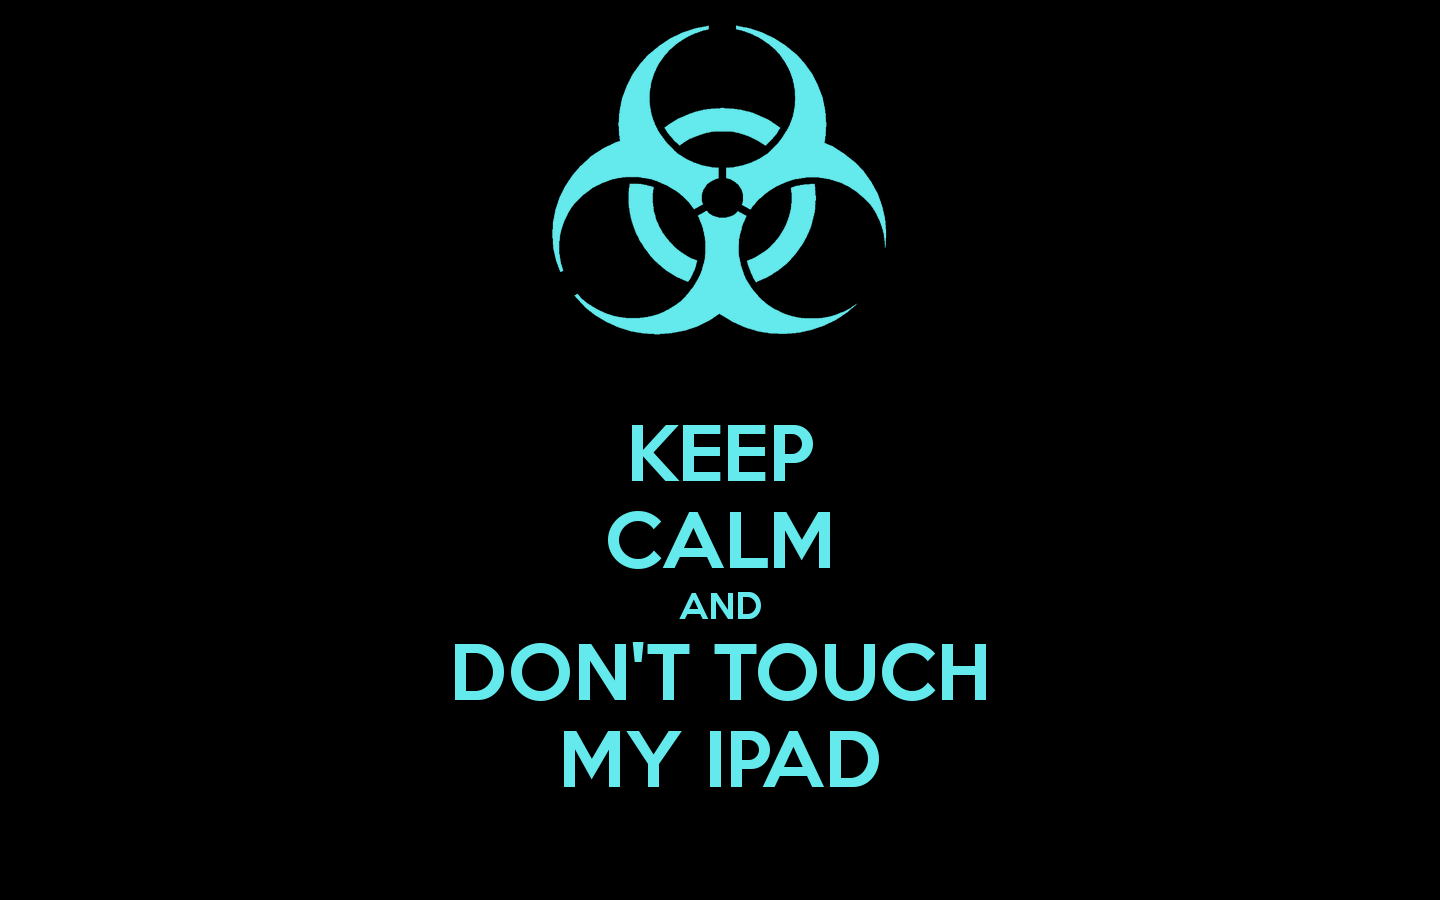 Dont Touch My Ipad Wallpaper Wallpapersafari Dont Touch My Phone Wallpapers Ipad Wallpaper Dont Touch